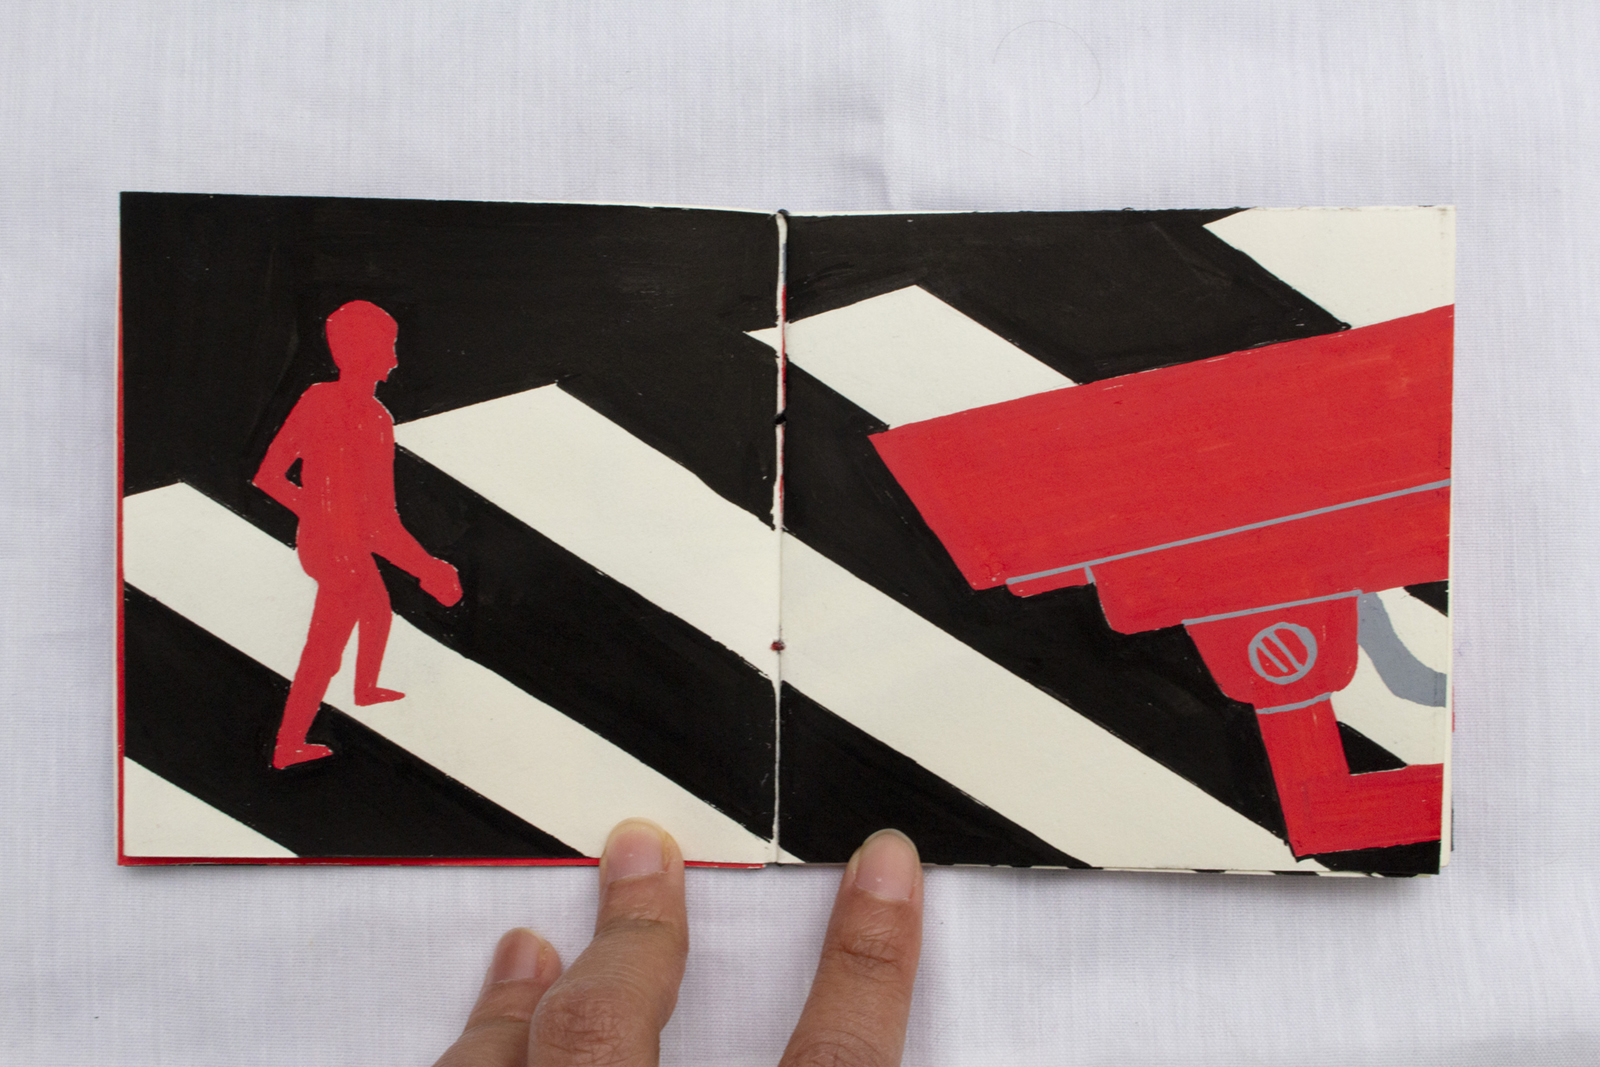 Sixth spread. A red camera follows a red silhouette of a person in a crosswalk.